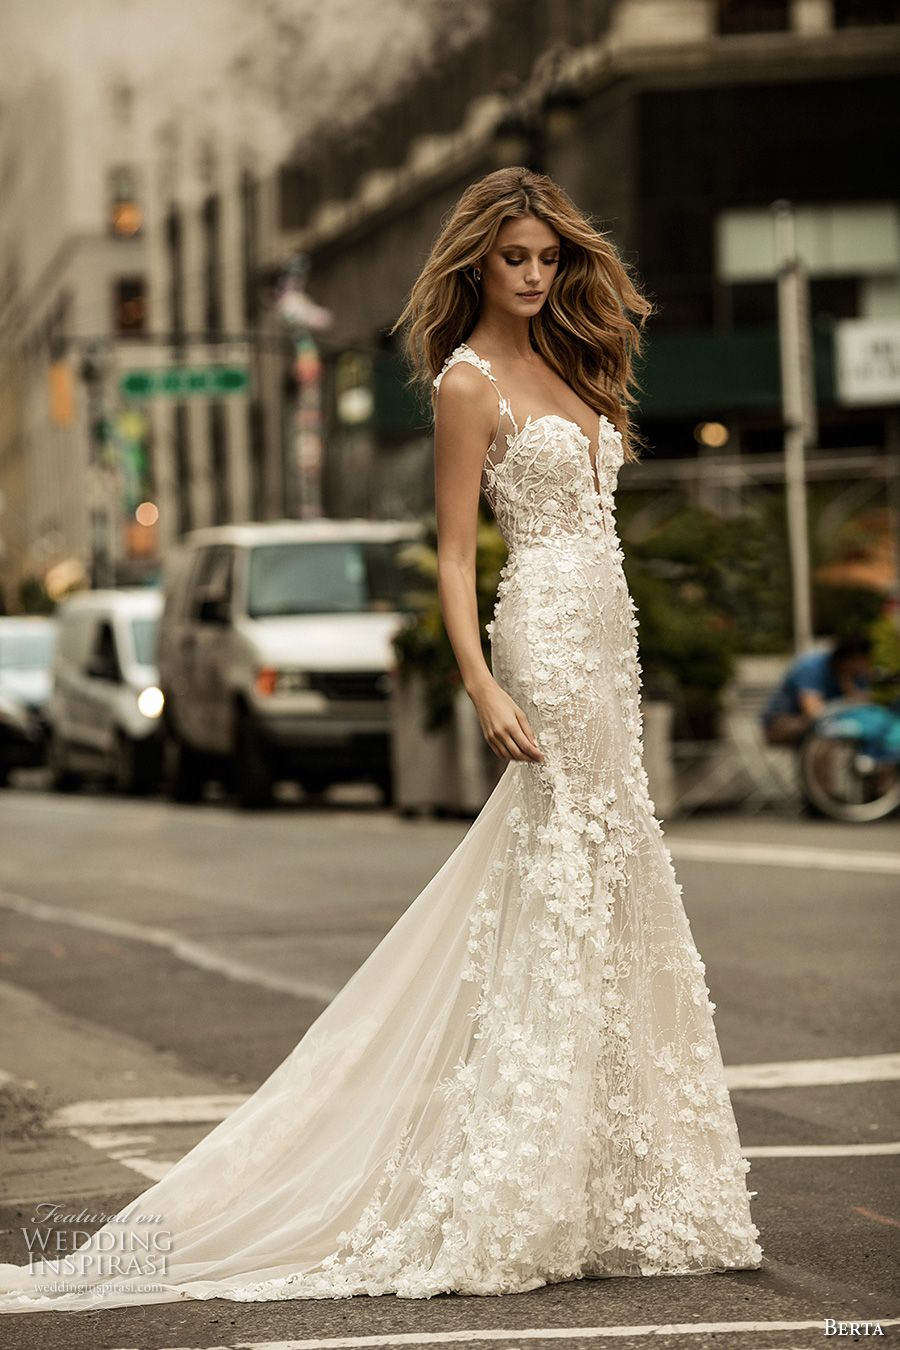 How much are berta wedding dresses  Berta Fall  Wedding Dresses  Marriage Wedding gowns and Brides